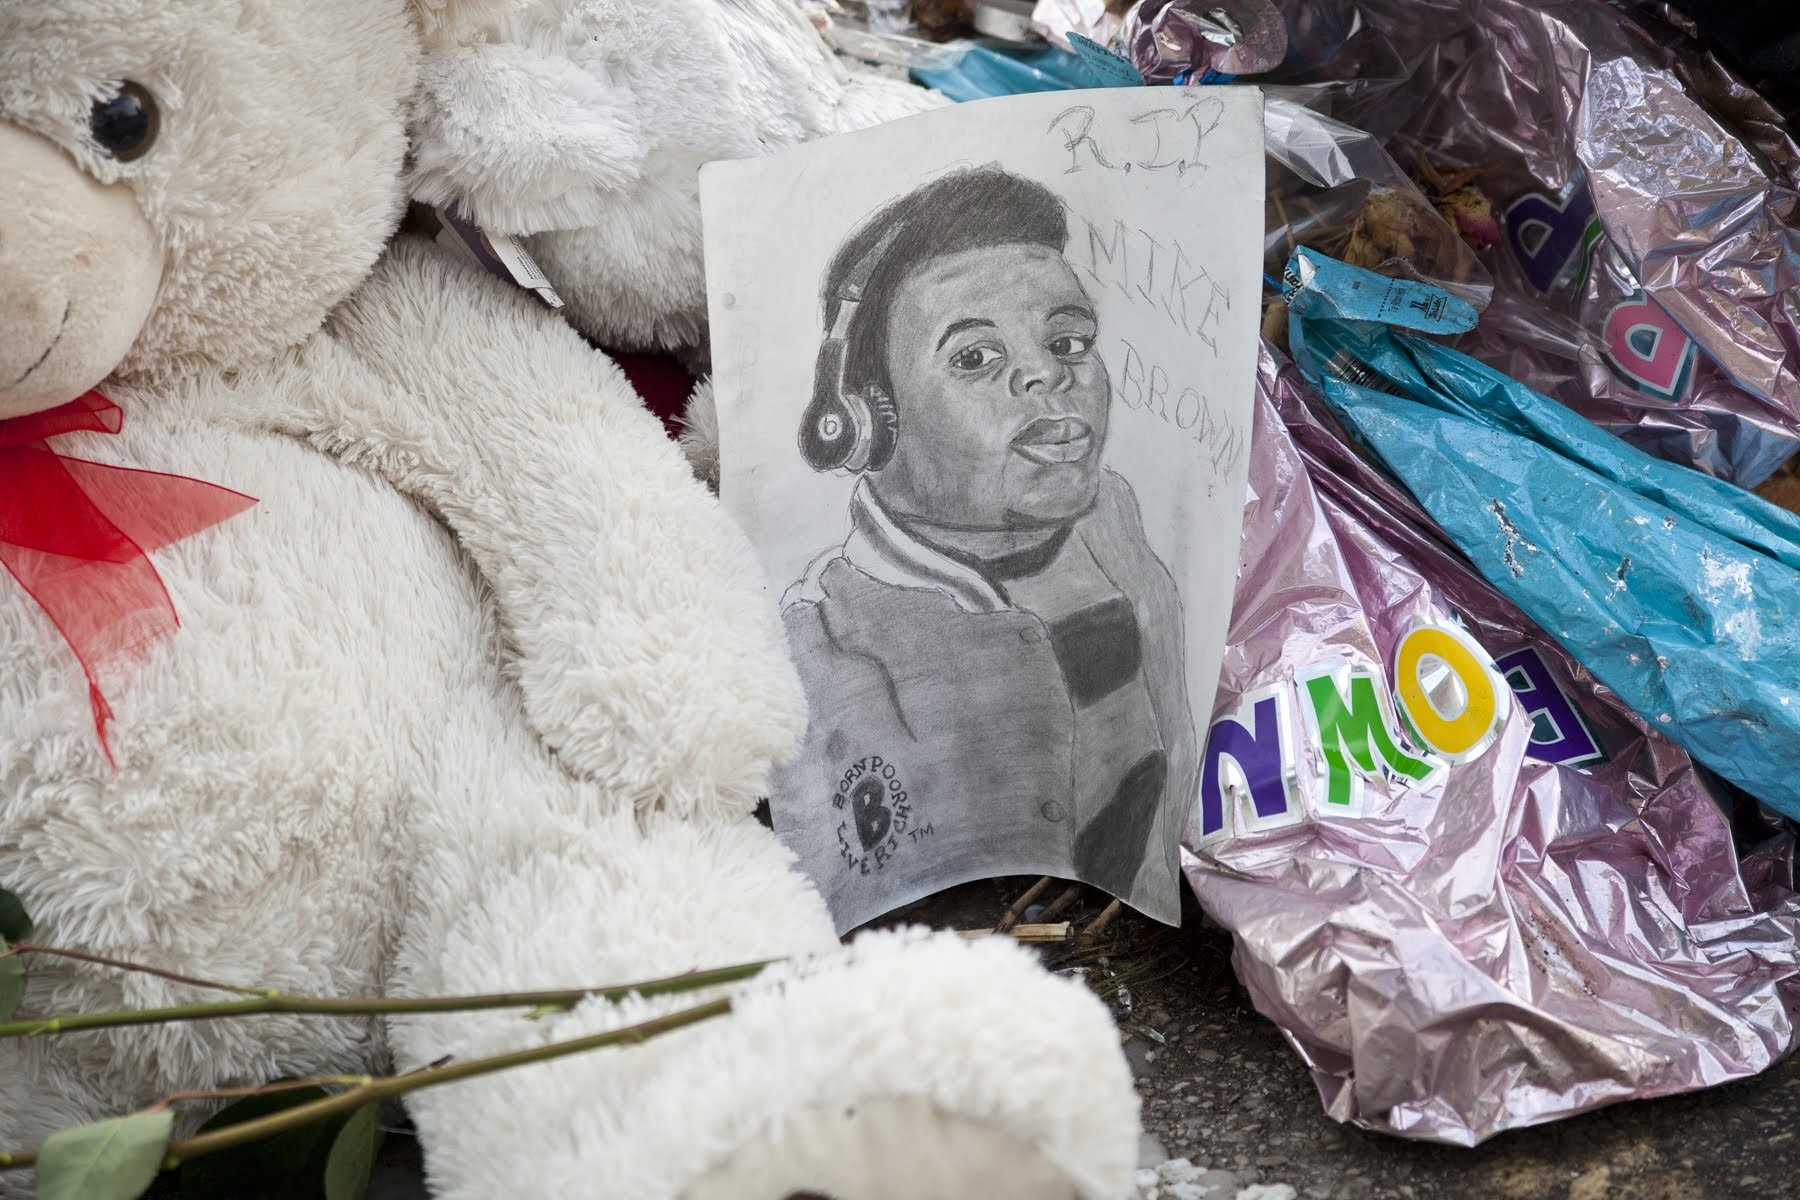 A memorial for Michael Brown Jr. in Ferguson, Mo.  CREDIT: Magnolia Pictures